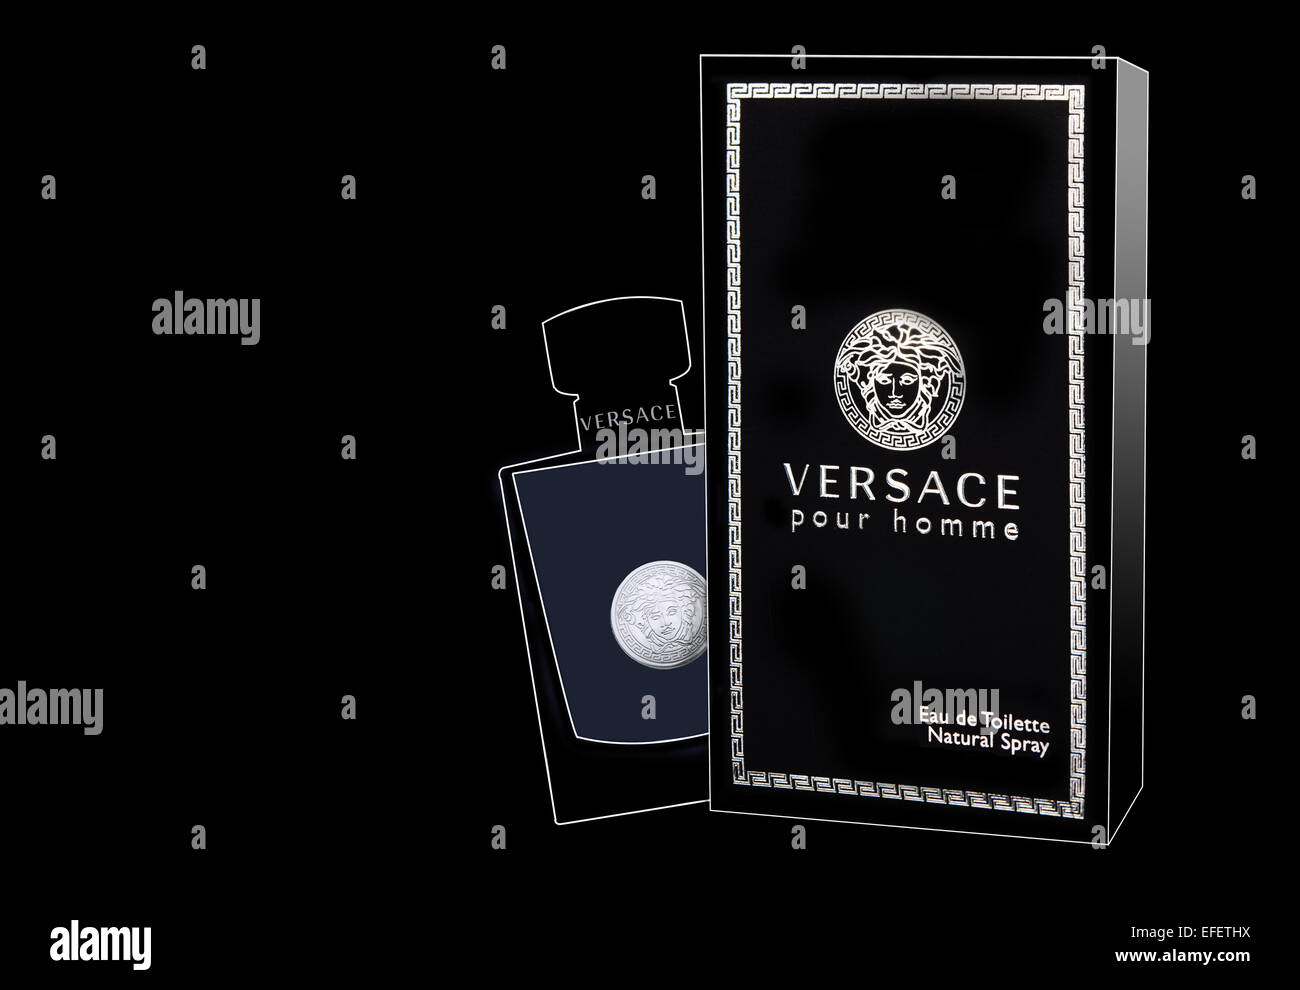 Versace pour homme outlined box and bottle for product photography on black background Stock Photo